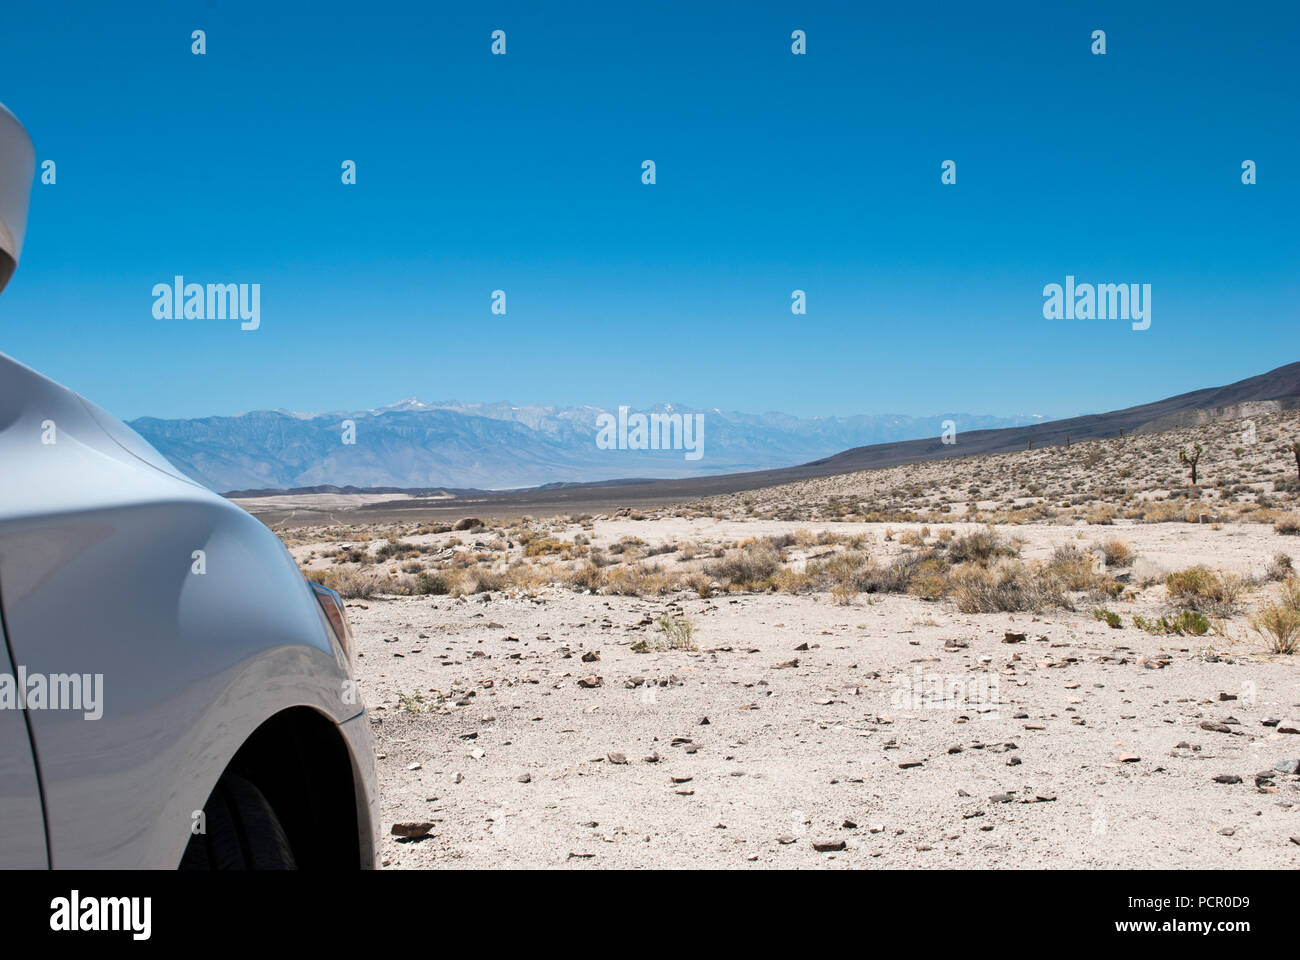 Car in the desert. Concept of adventure, road trip. Concept of test drive. Extreme environment. Hot weather. 120 degree. - Stock Image